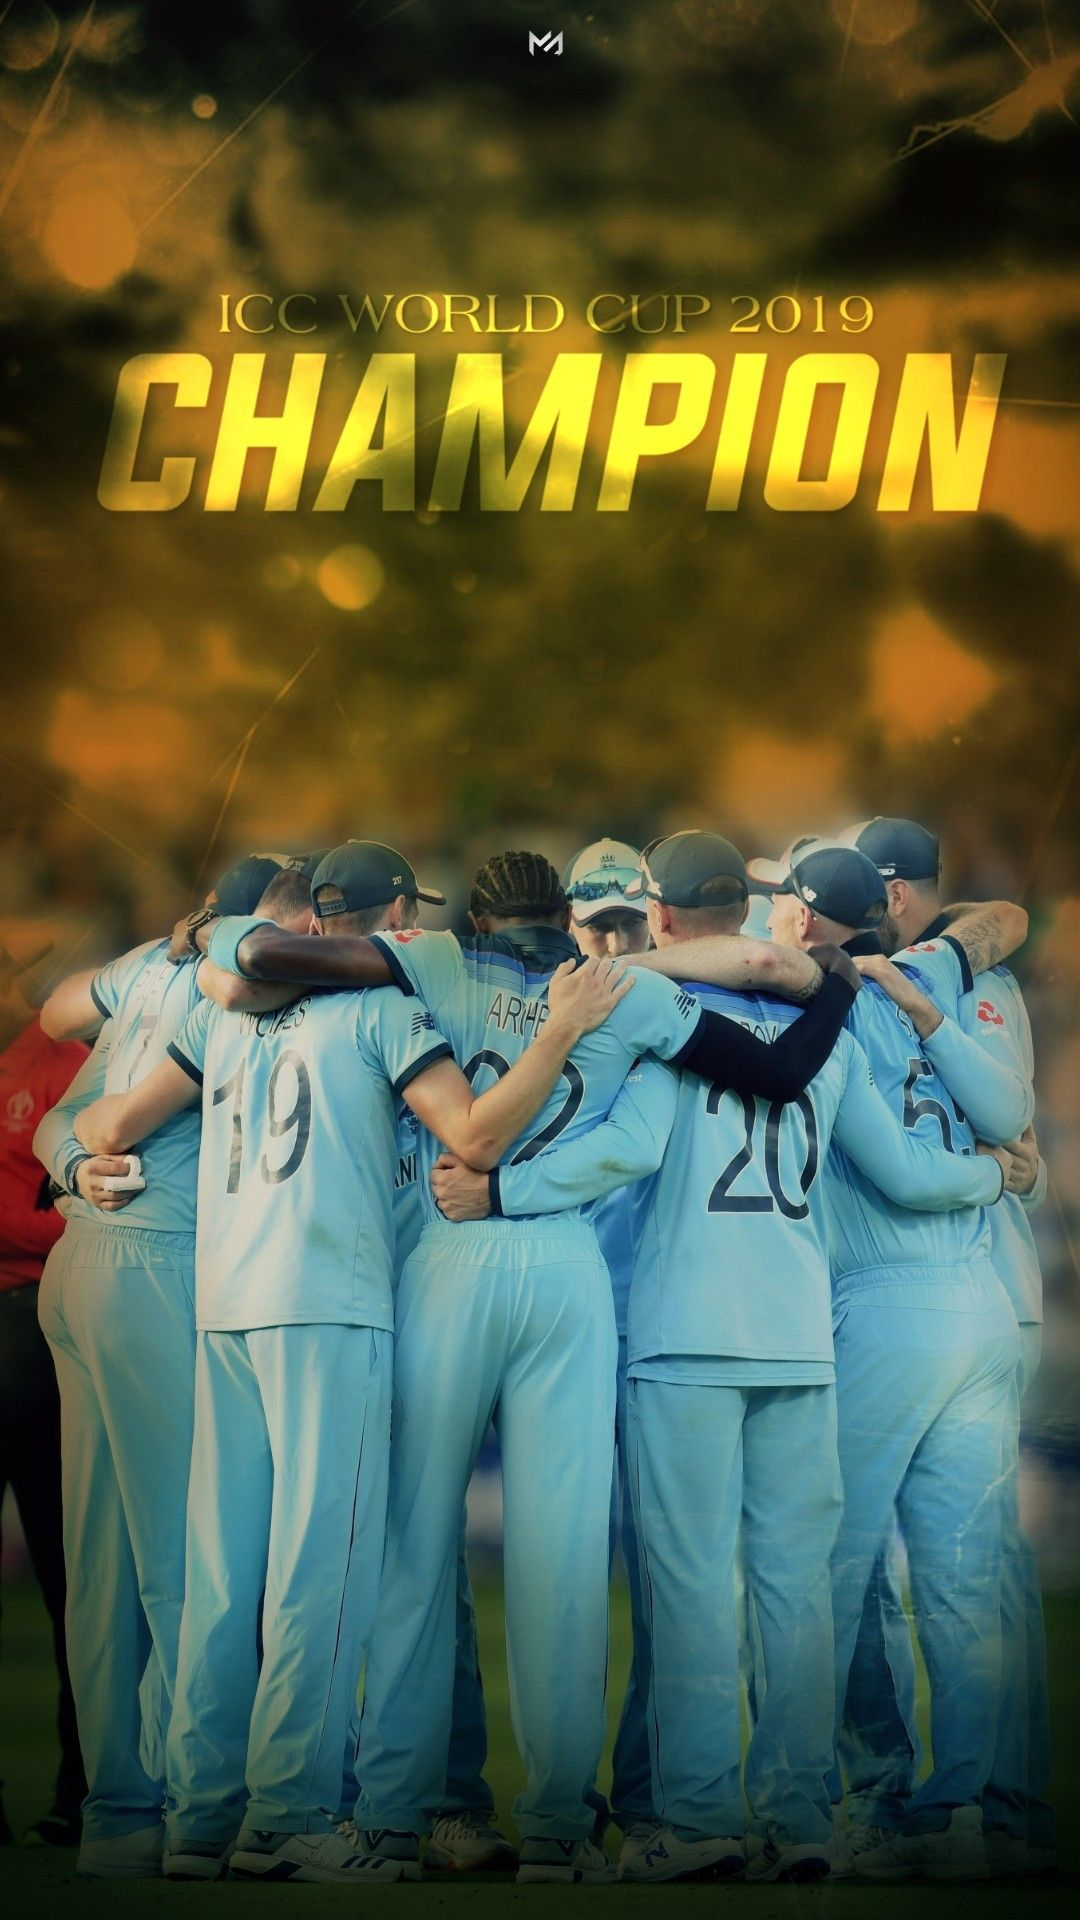 Champion England England Cricket Team Cricket Wallpapers Team Wallpaper